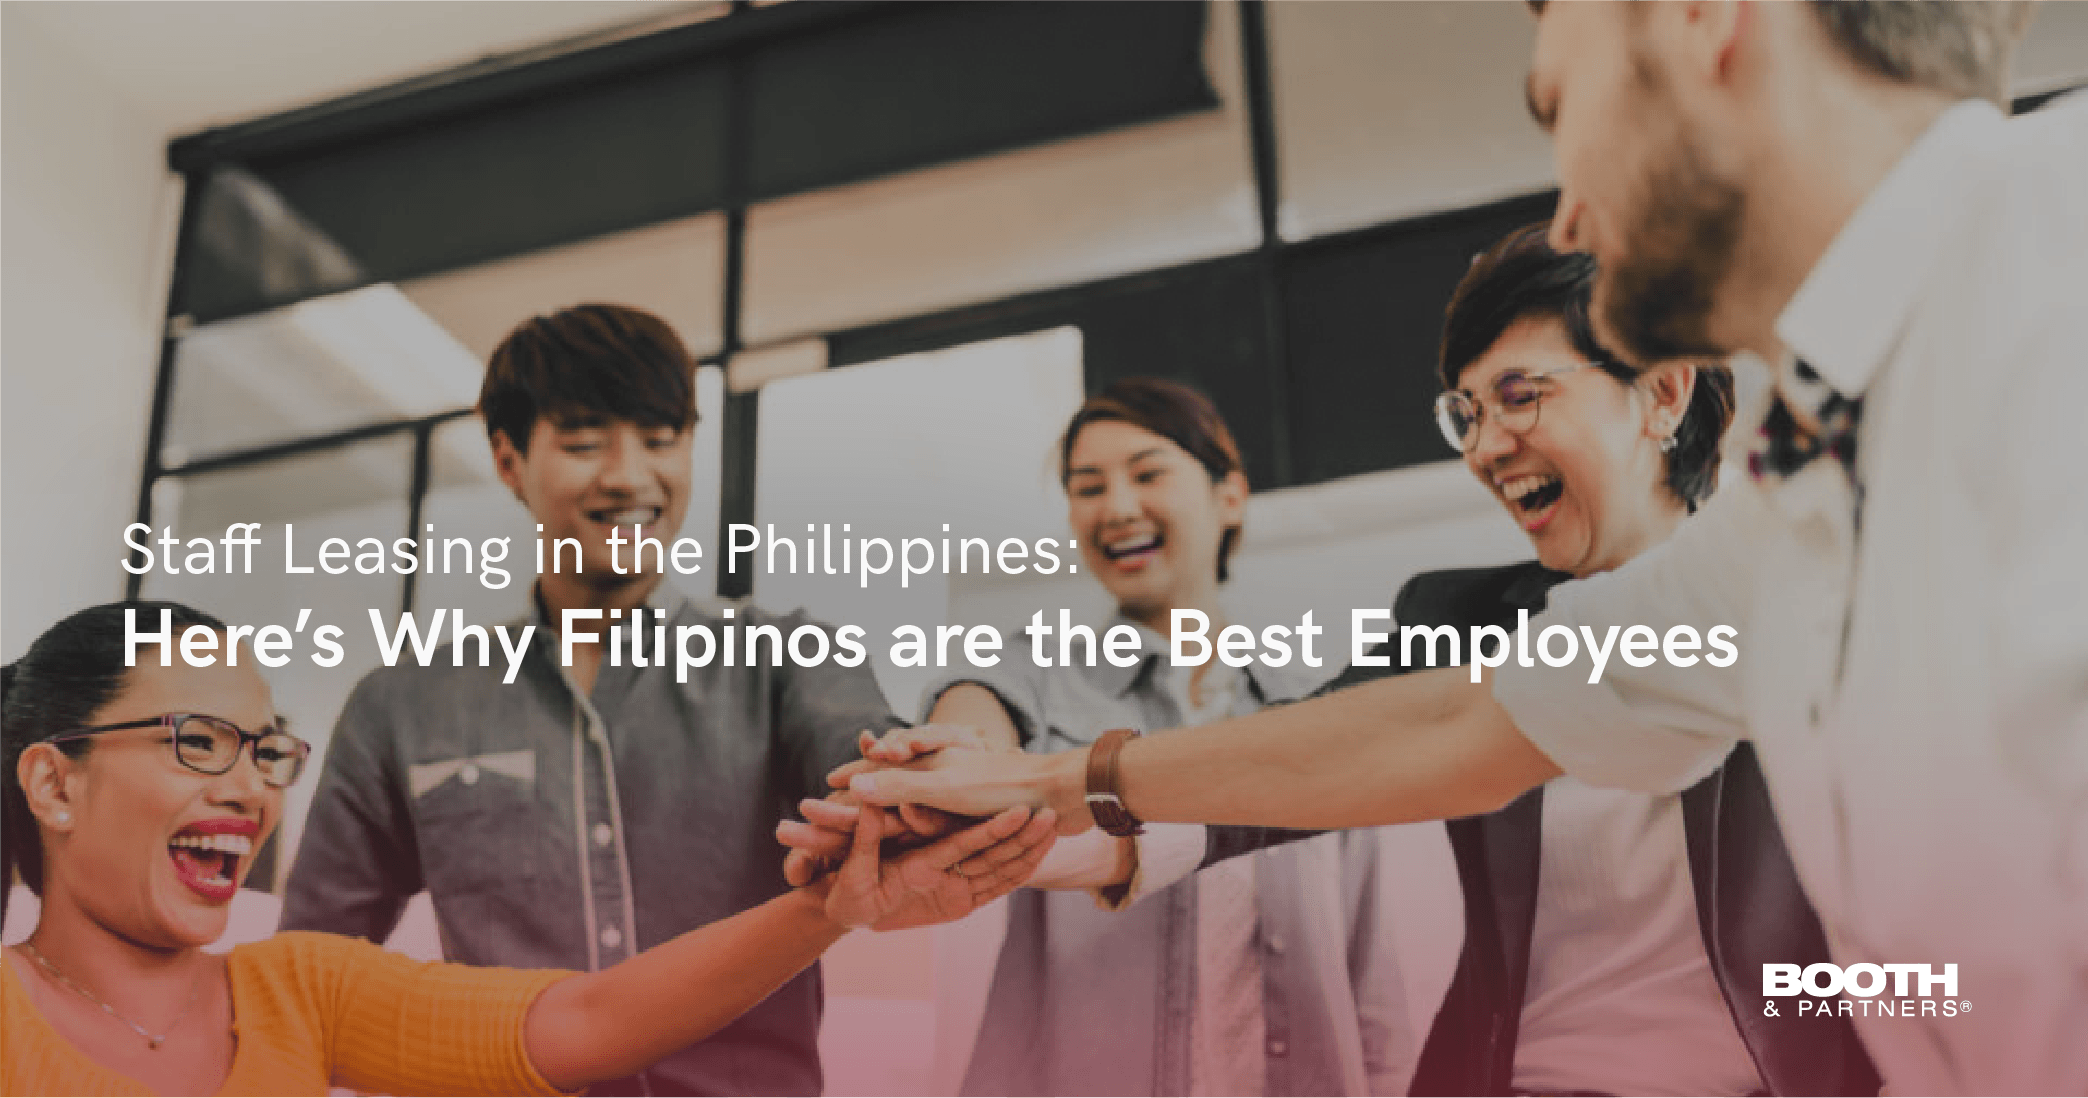 Staff Leasing in the Philippines Heres Why Filipinos are the Best Employees